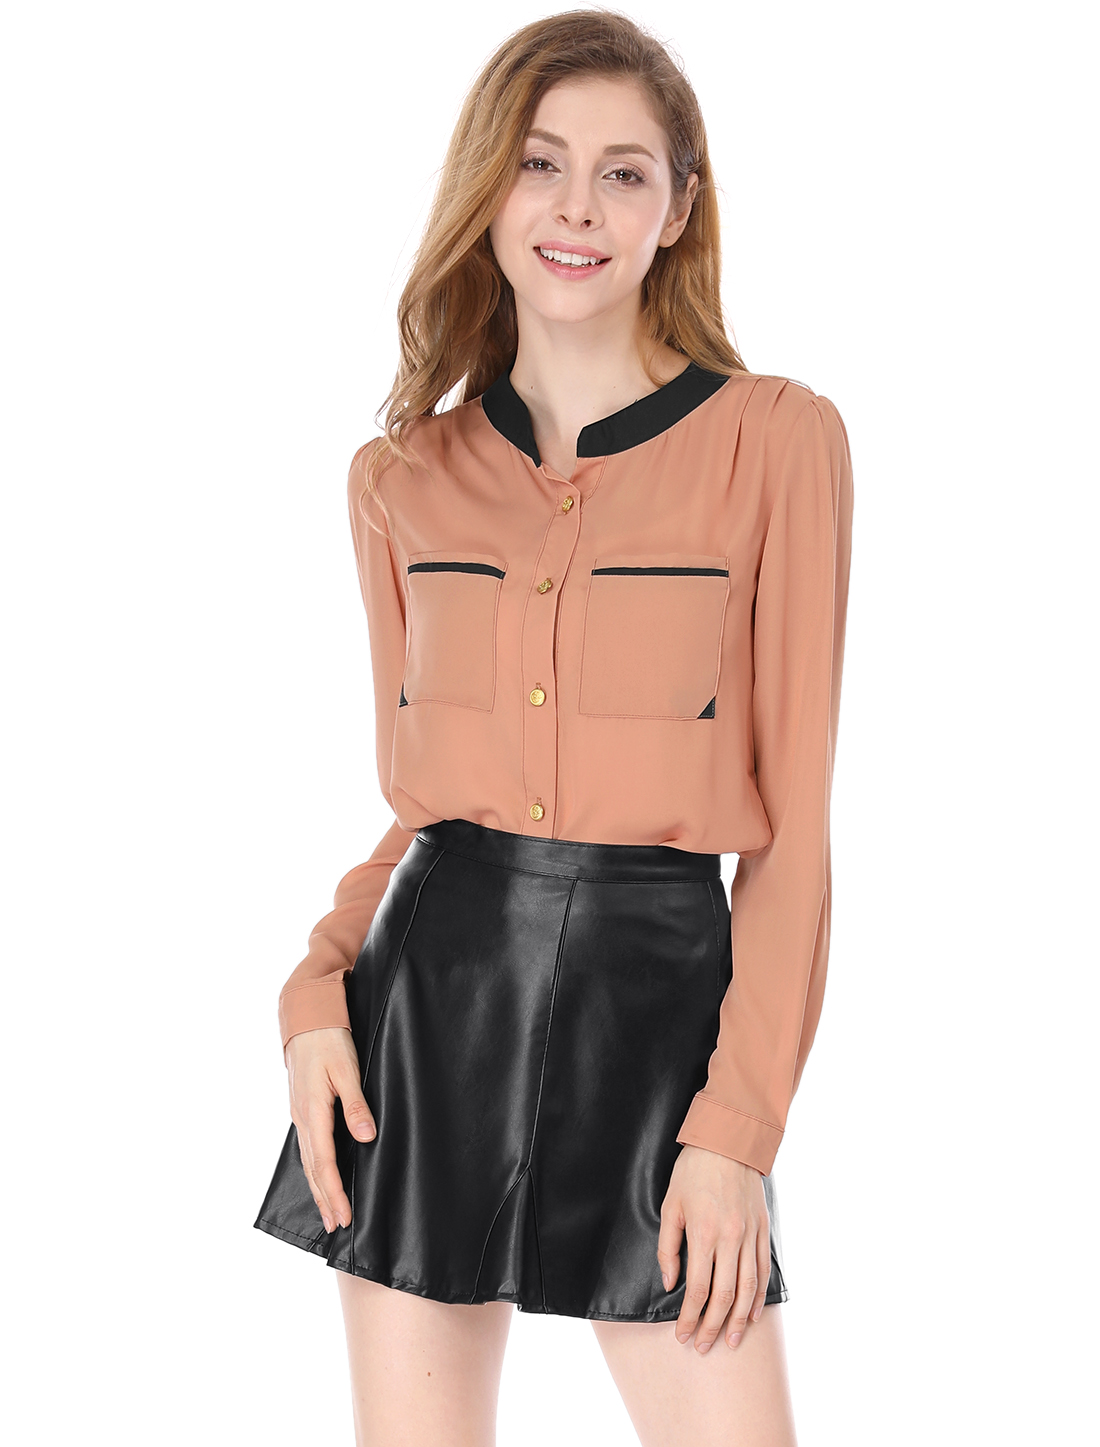 Lady Stand Collar Patch Pockets Chiffon Shirt Salmon Pink L